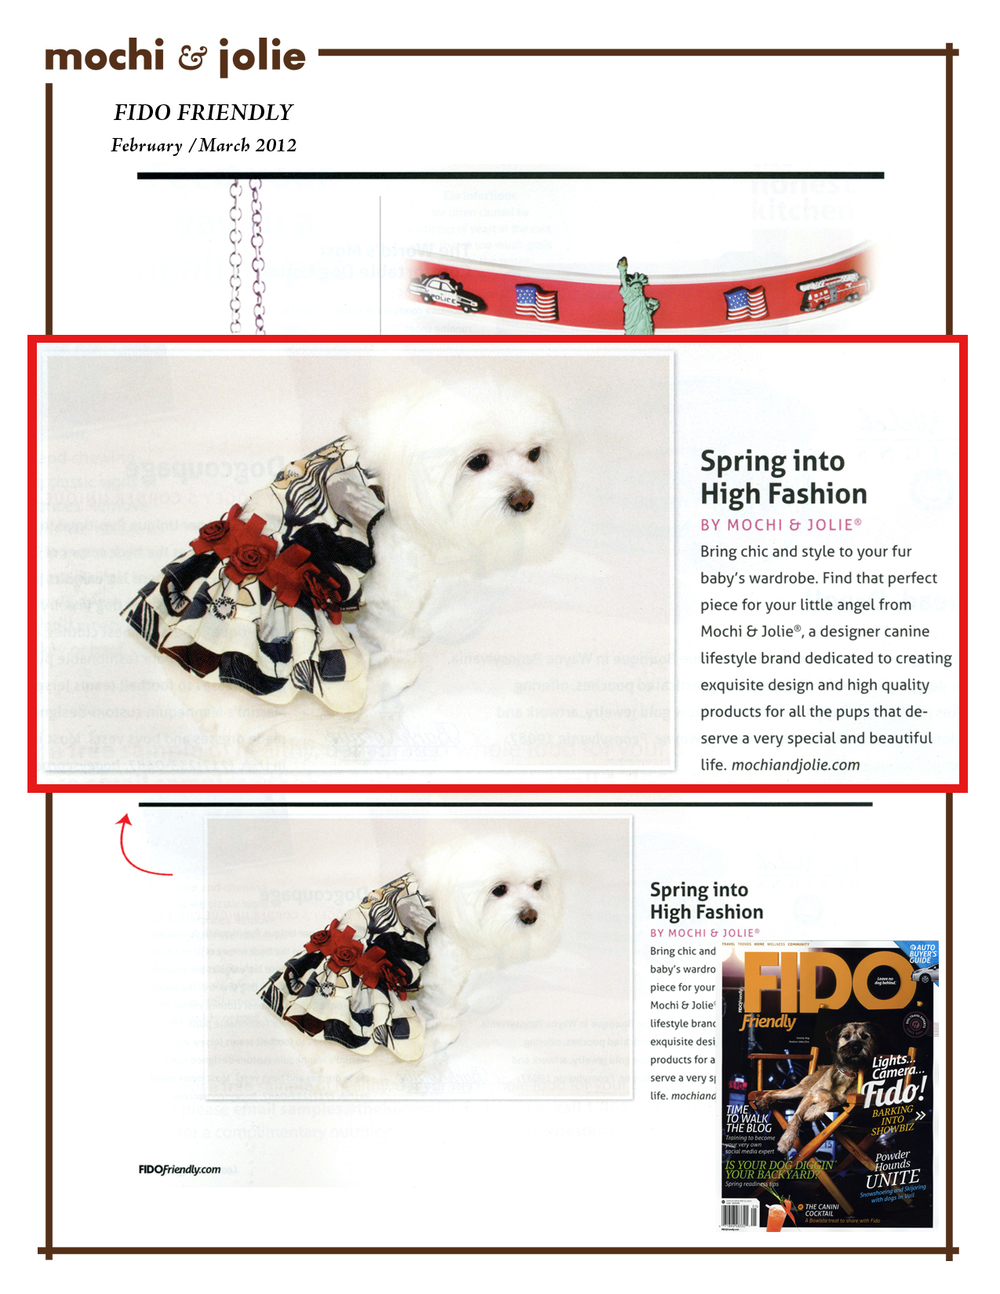 Fido Friendly (issue 53, February/March 2012)